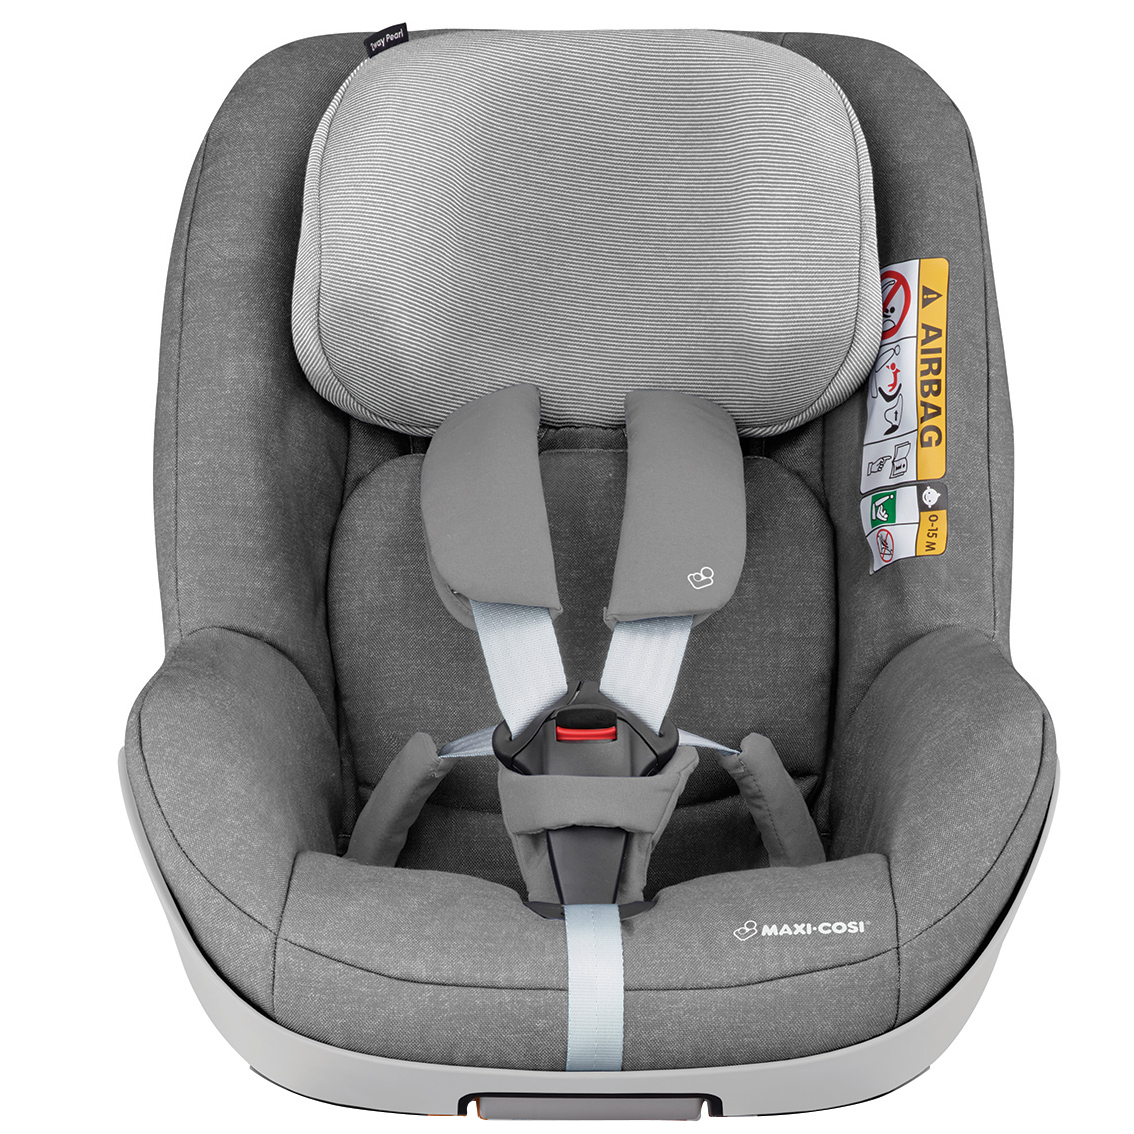 maxi cosi silla de coche 2way pearl 2018 nomad grey comprar en kidsroom sillas de coche. Black Bedroom Furniture Sets. Home Design Ideas